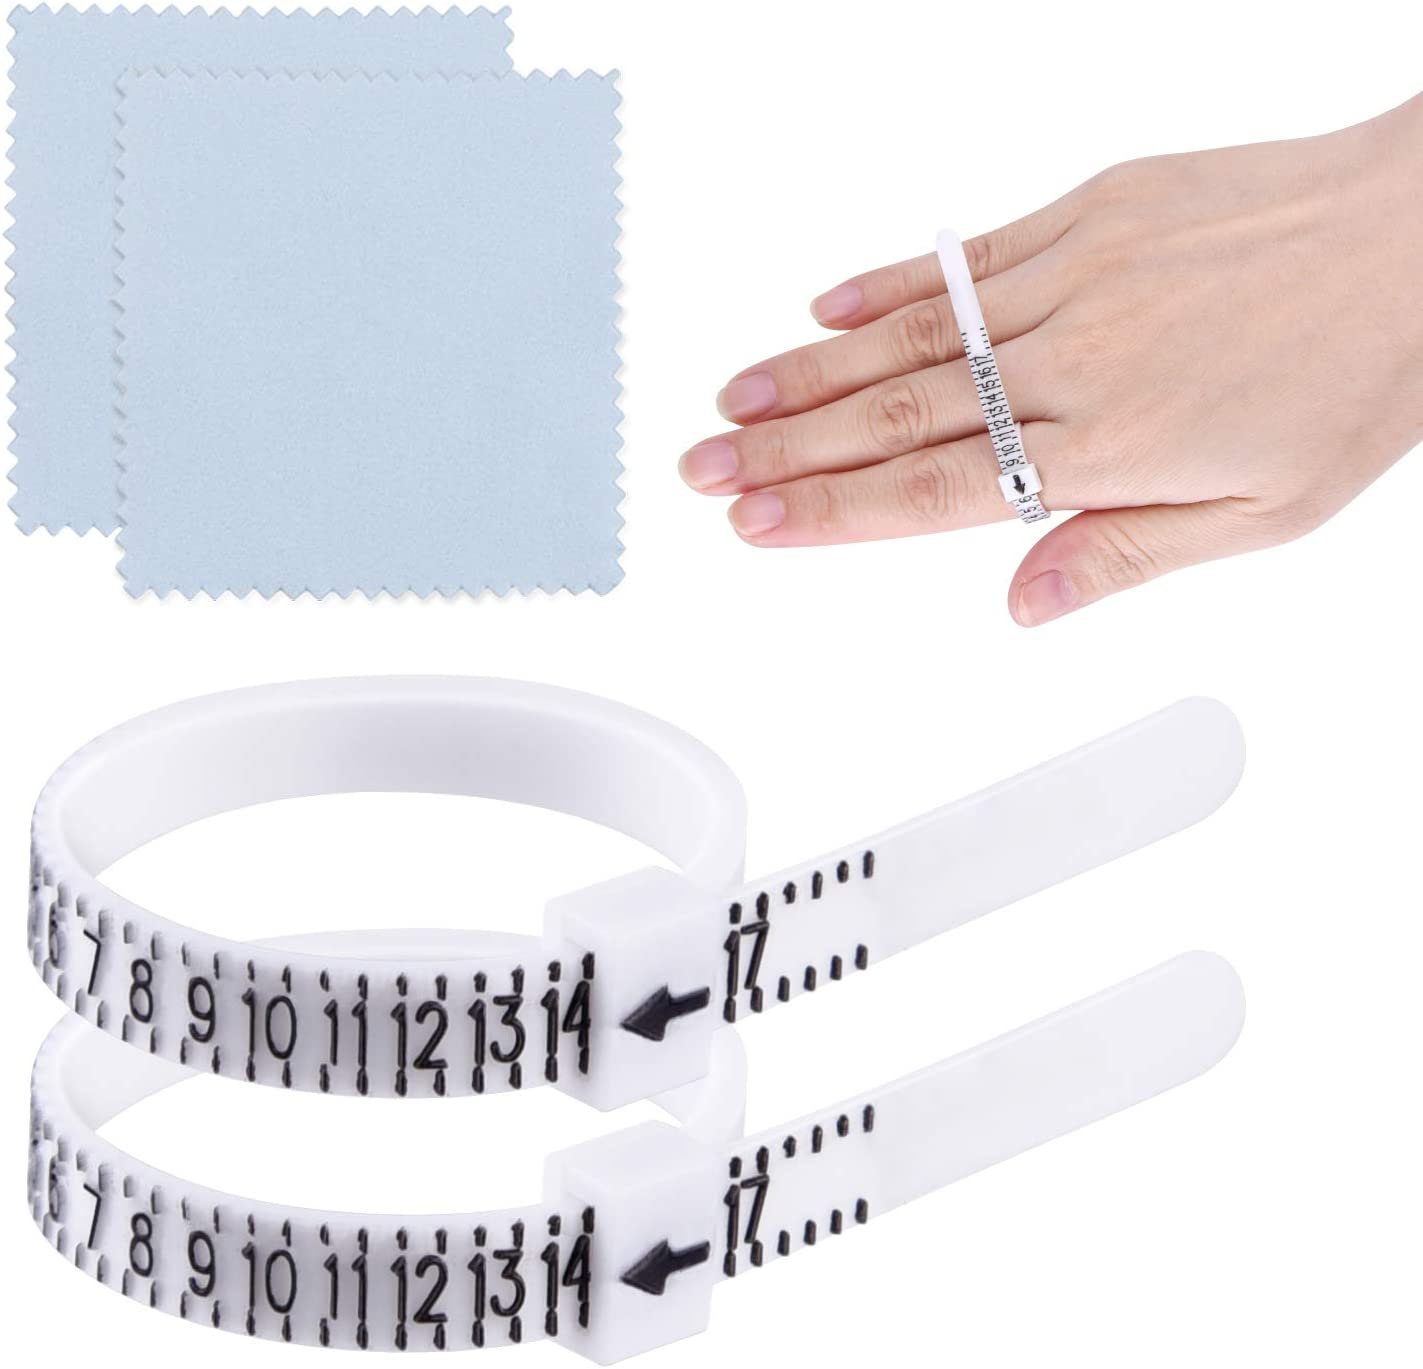 Ring Sizer Finger Measuring Tool Gauge for Men-Women-Kids-Find Check Ring Size to Make Rings or Jewelry Accessory 2 Pack in White 1-17 US /& UK